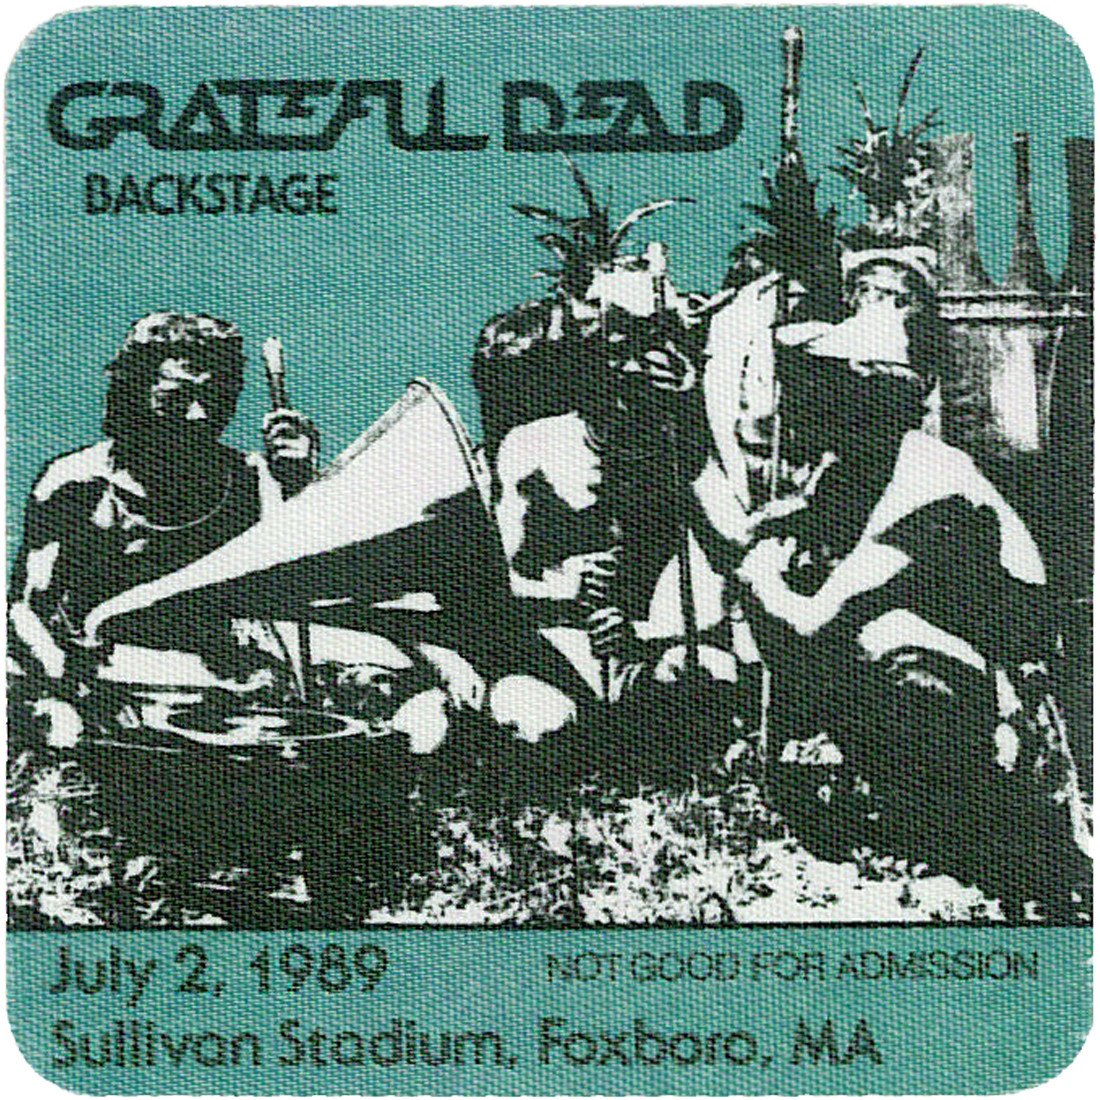 Grateful Dead 1989 07-02 Backstage Pass